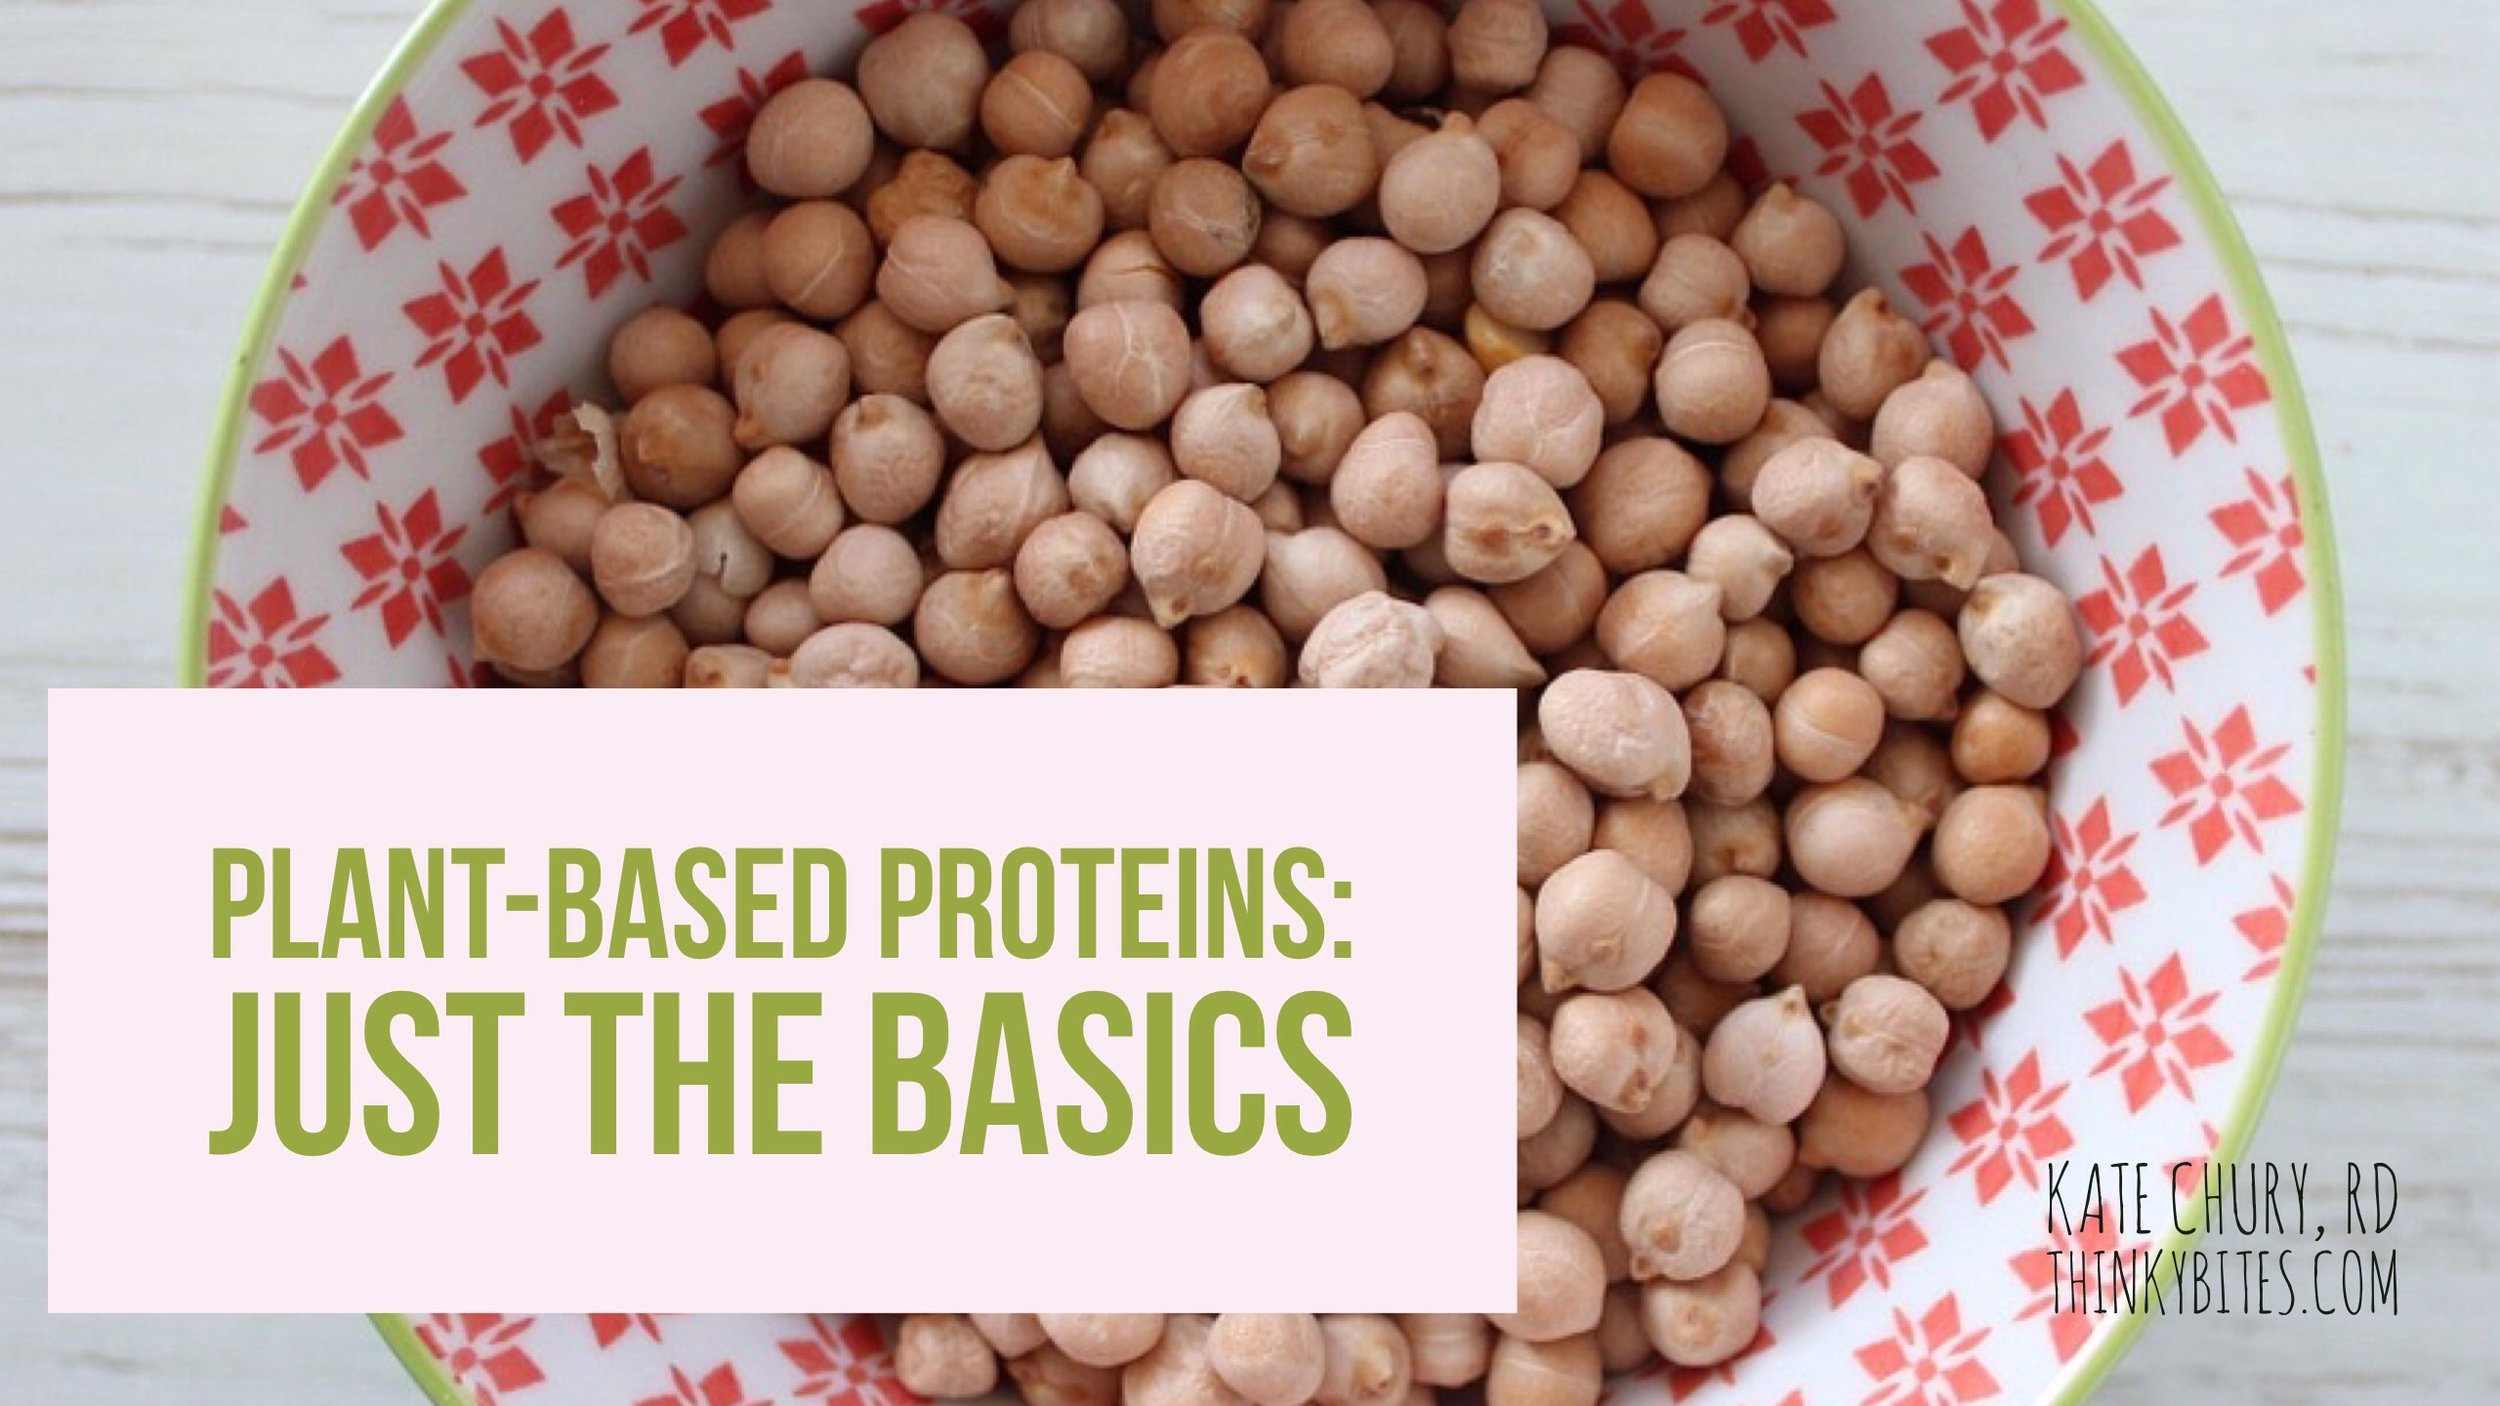 Plant-Based Proteins: Just the Basics